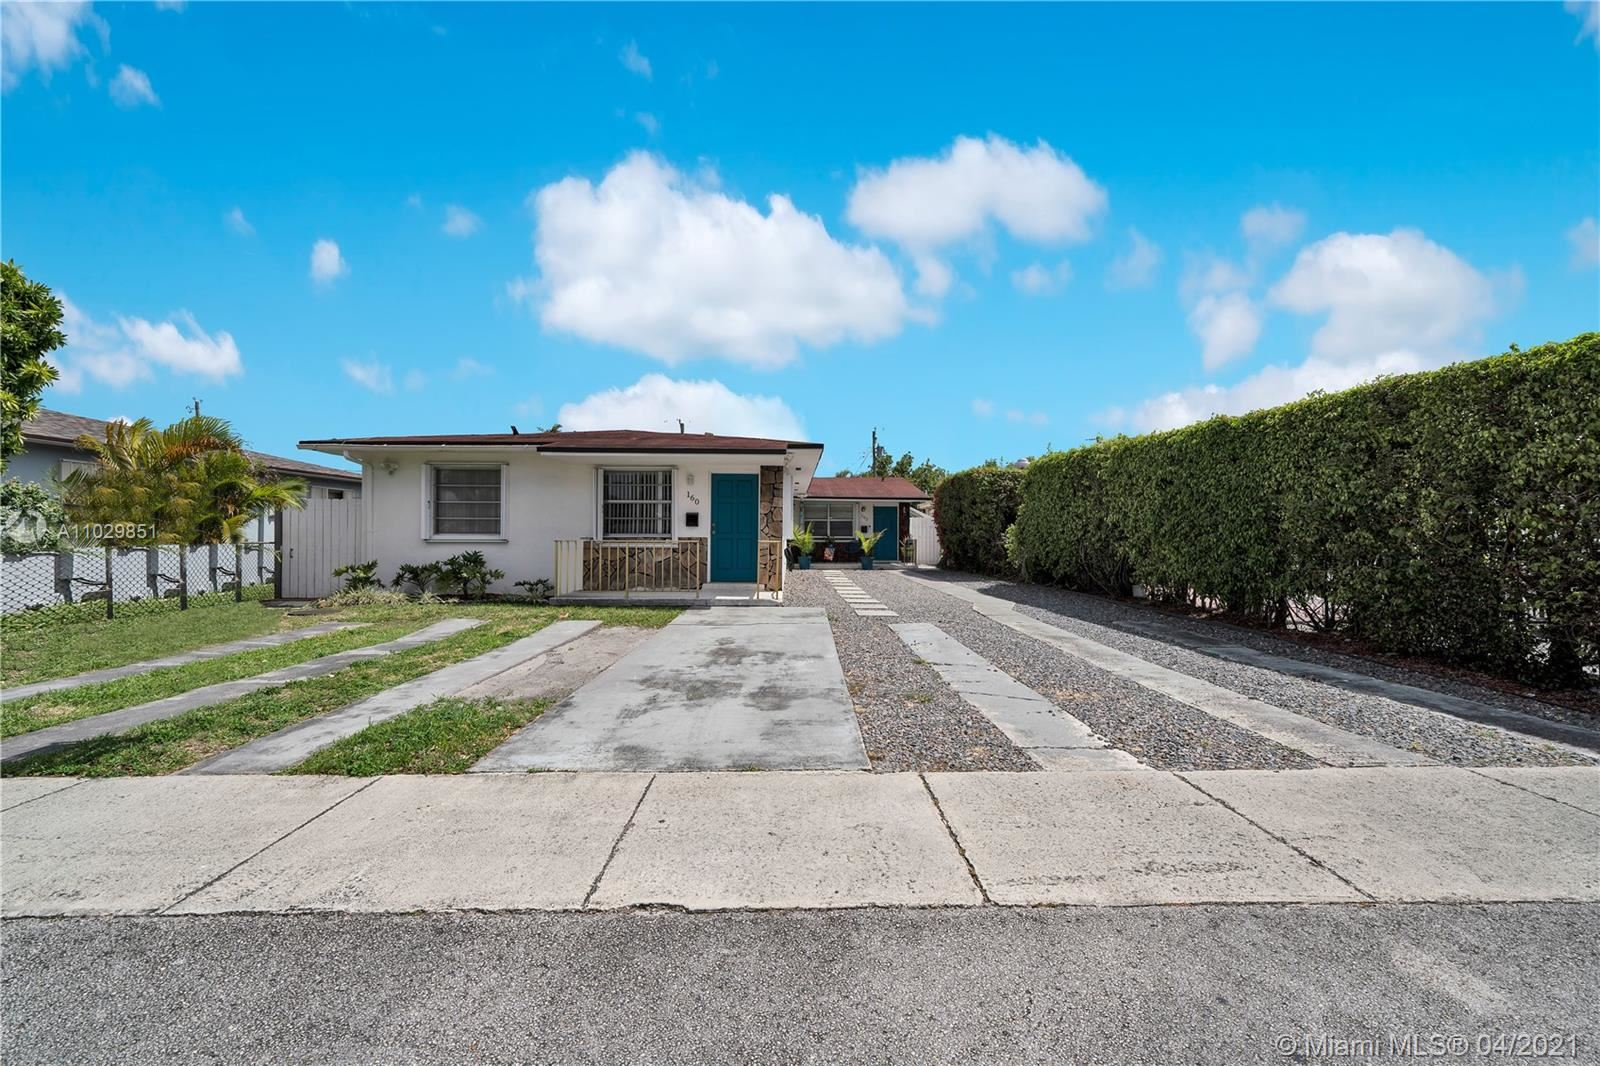 Photo for 160-162 W 13th St, Hialeah, FL 33010 (MLS # A11029851)